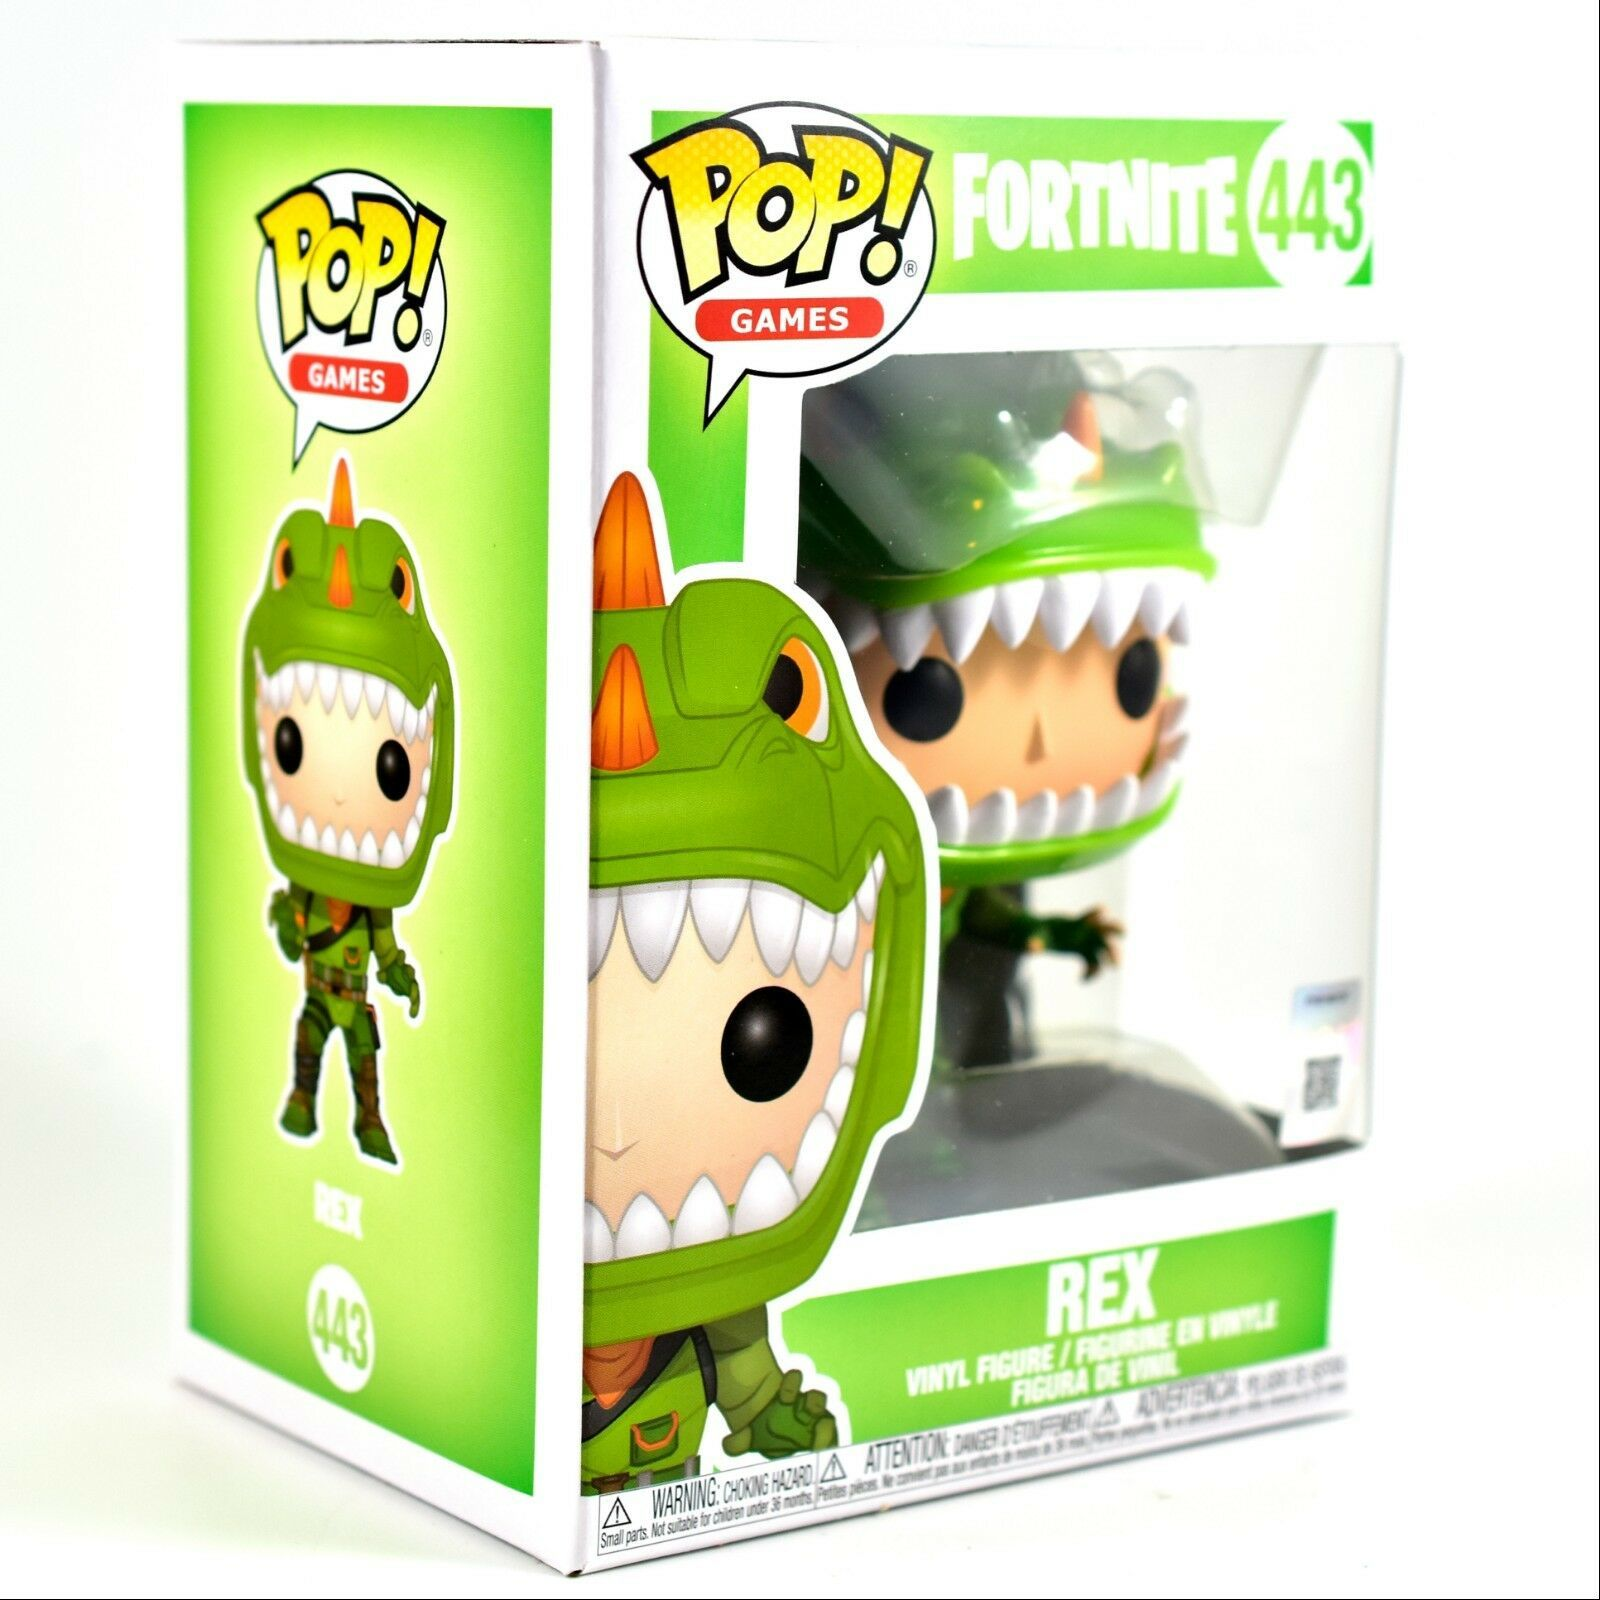 443 Vinyl-personaggio circa 10cm grandi Funko Pop Games fortnite//REX n